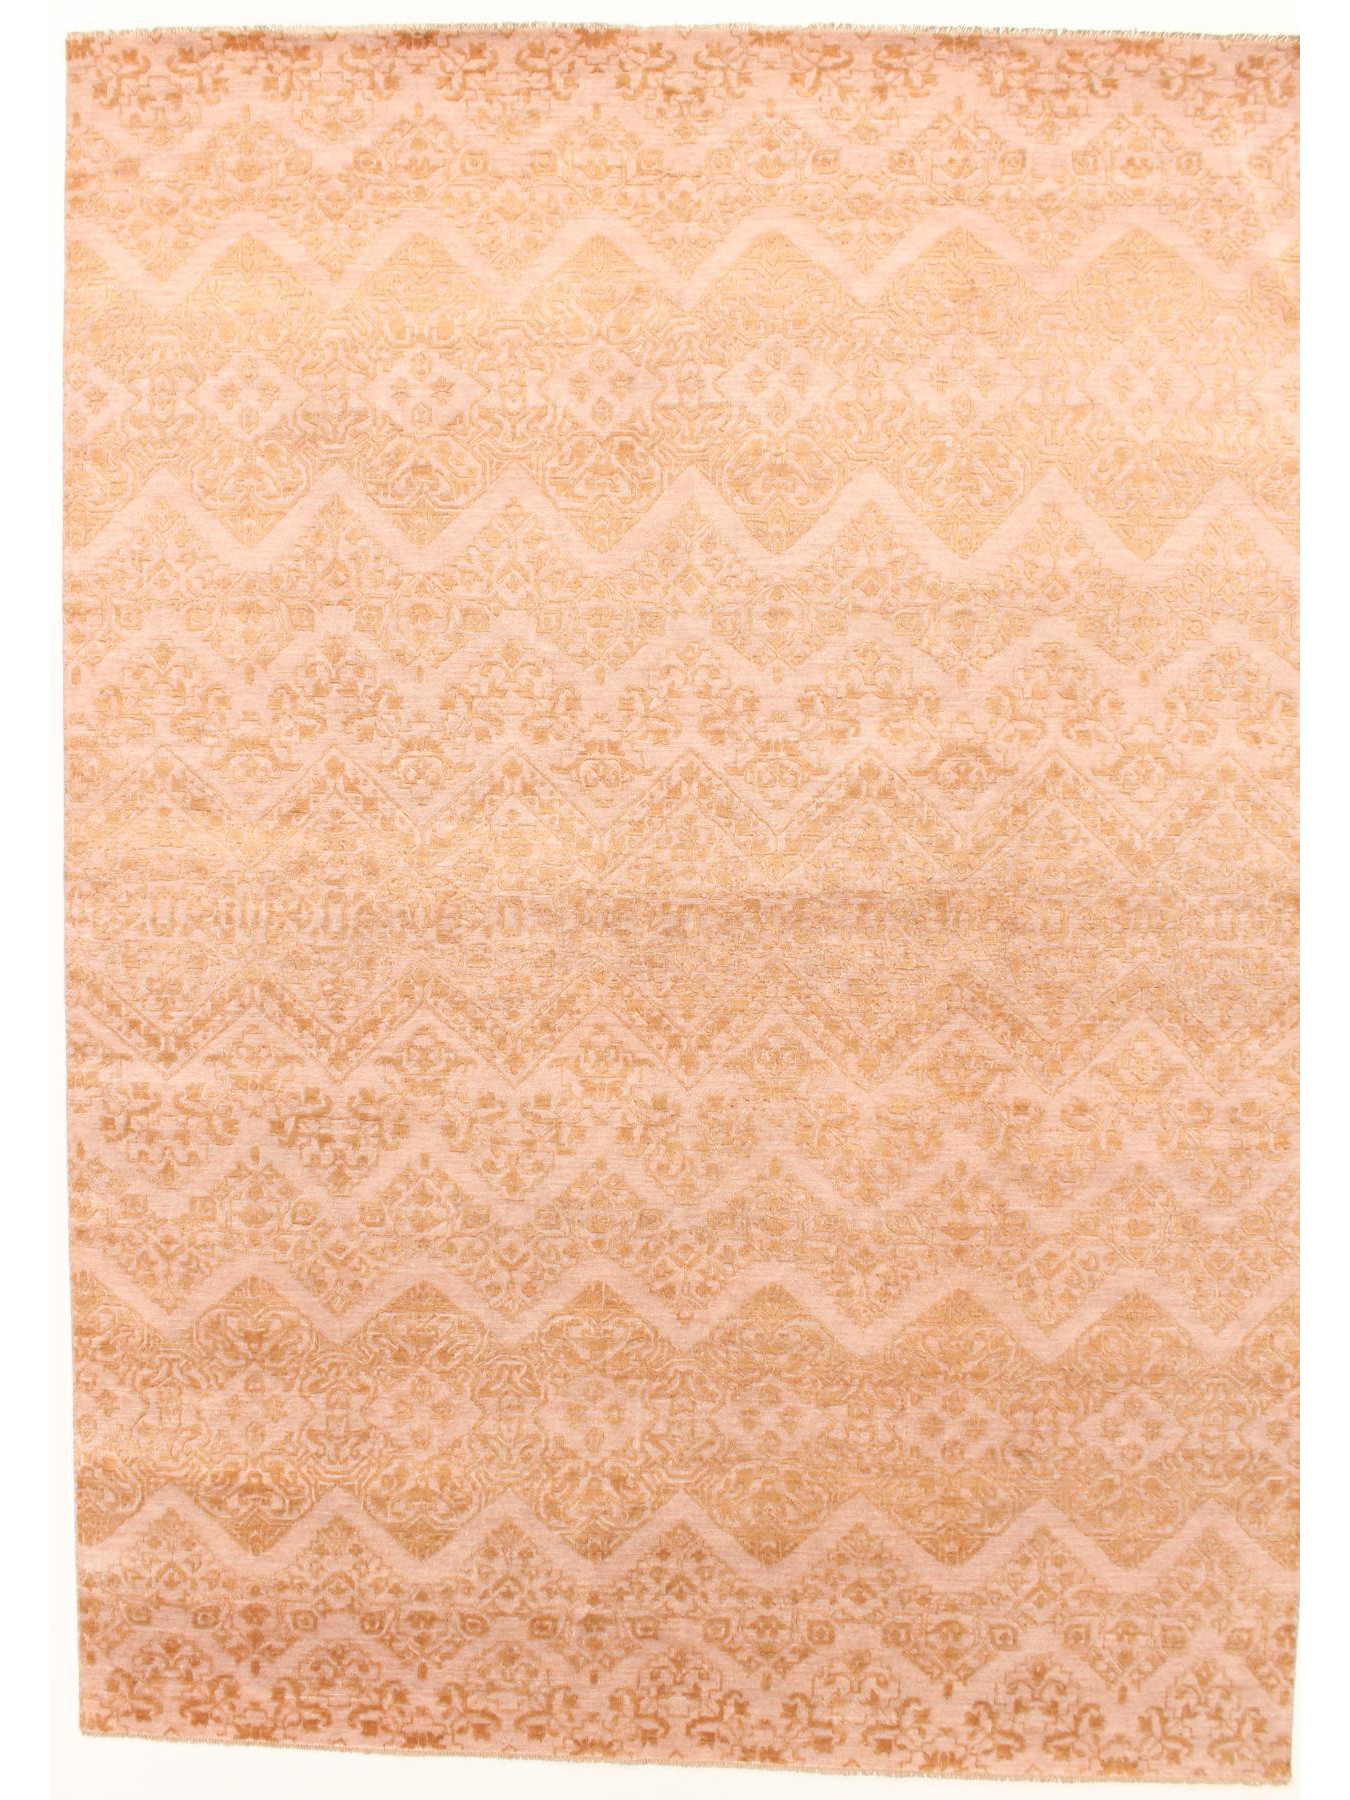 Tapis Luxury - Damask-GE-447 HB-110/B-81/Pink